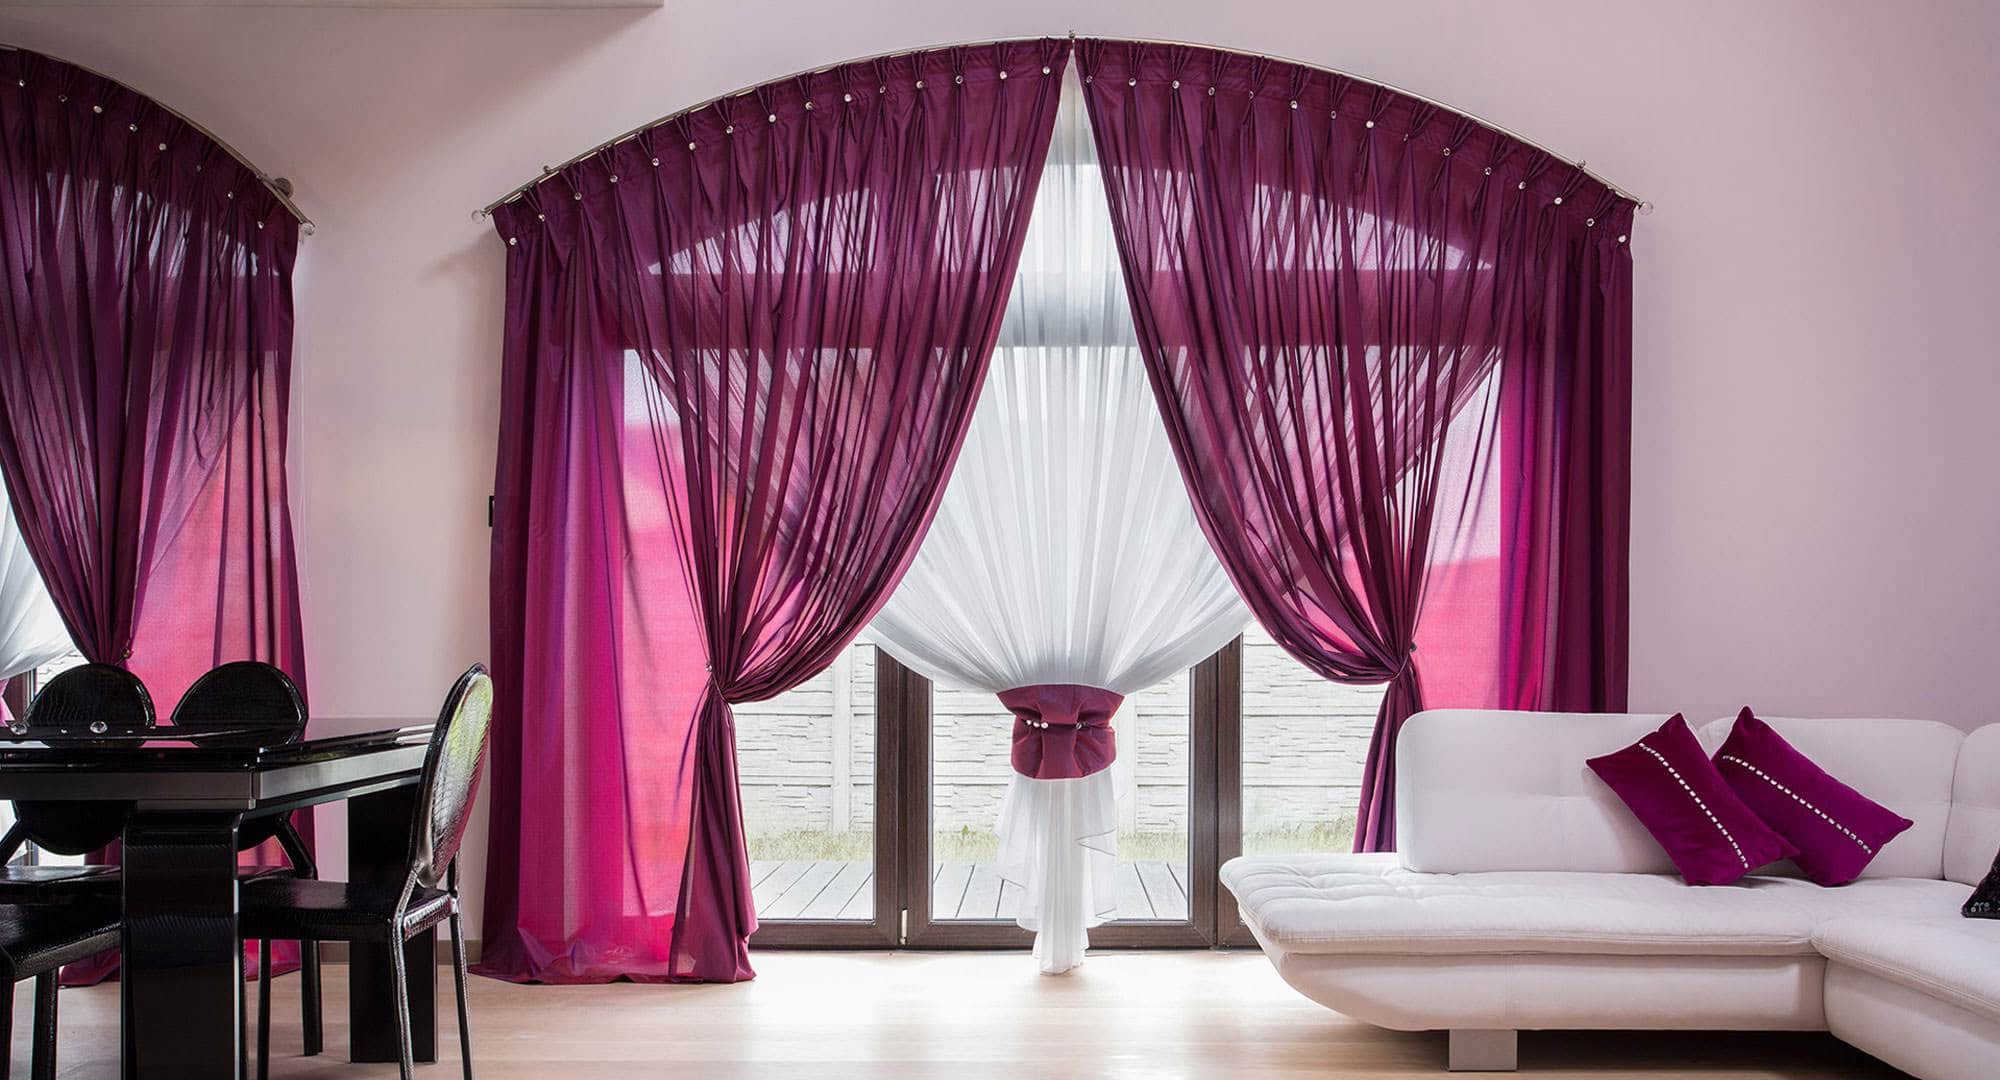 Custom Drapes & Window Treatments in St. Louis